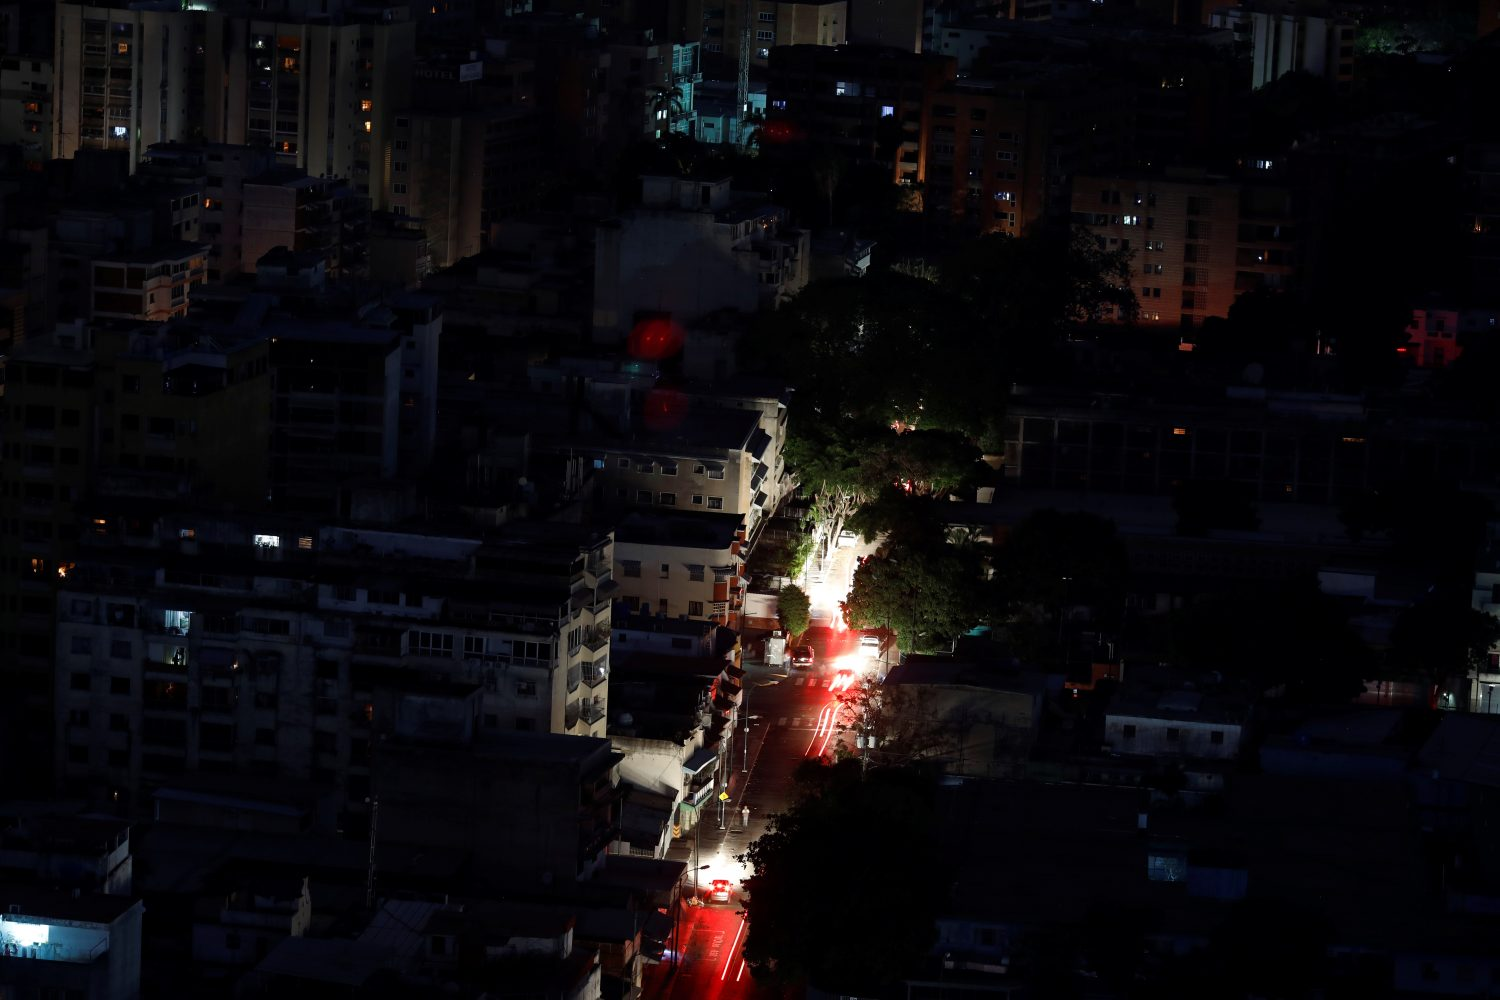 FILE PHOTO: A view of the city during a blackout in Caracas, Venezuela March 27, 2019. REUTERS/Carlos Garcia Rawlins